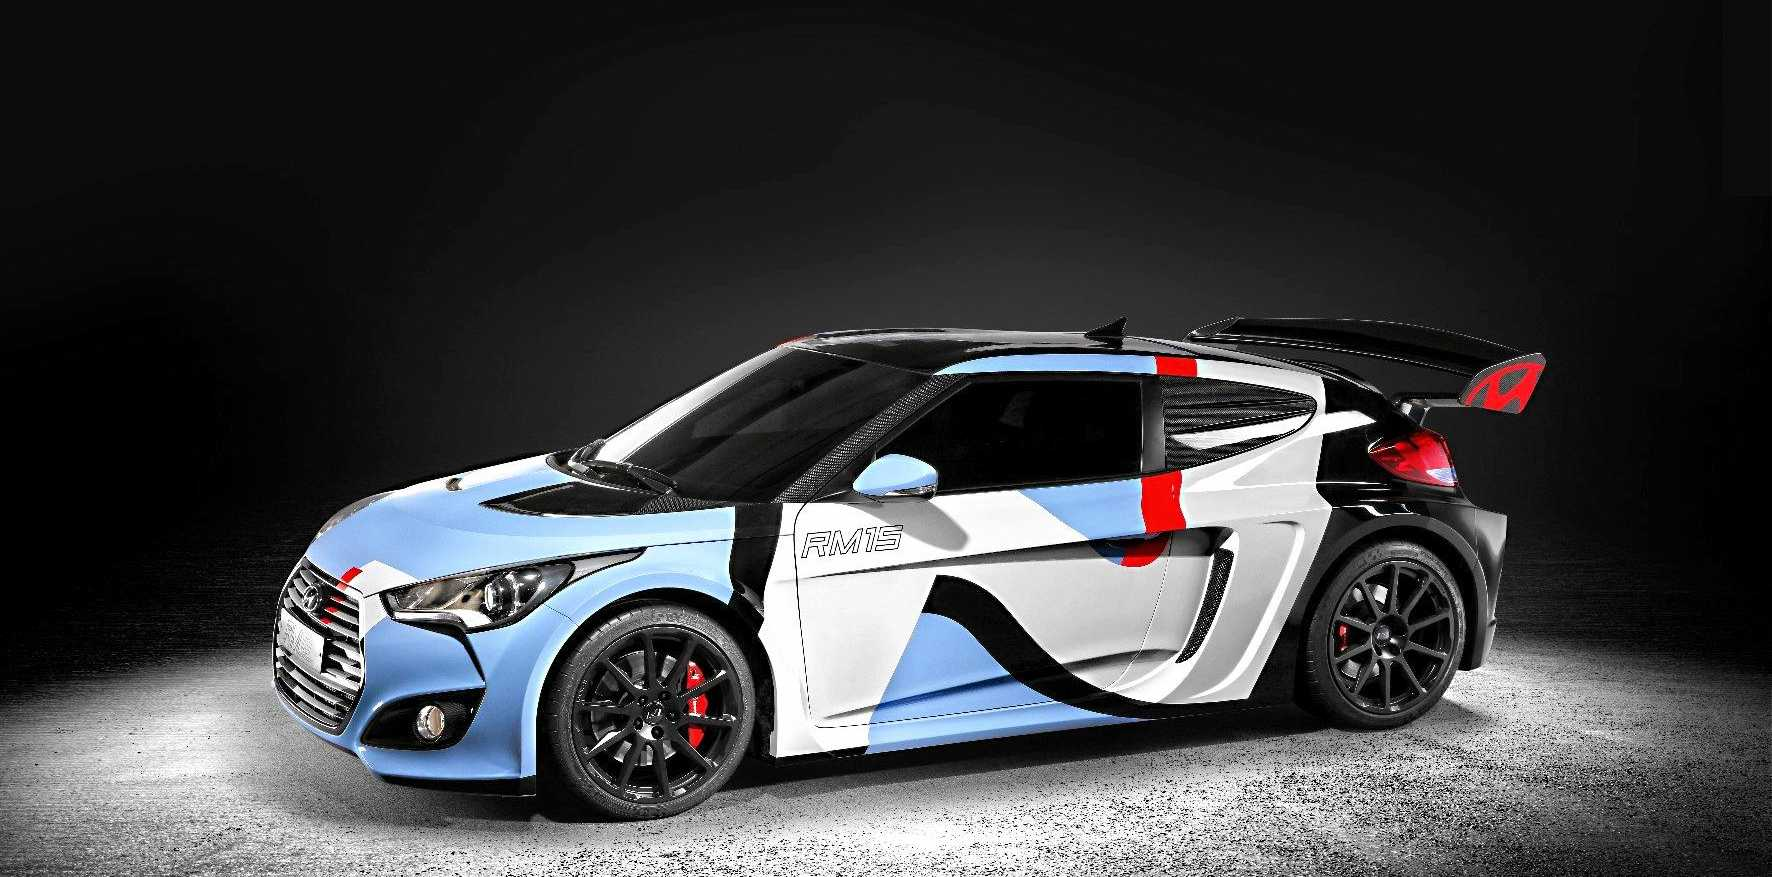 During 2017 Hyundai will launch its N Performance division.